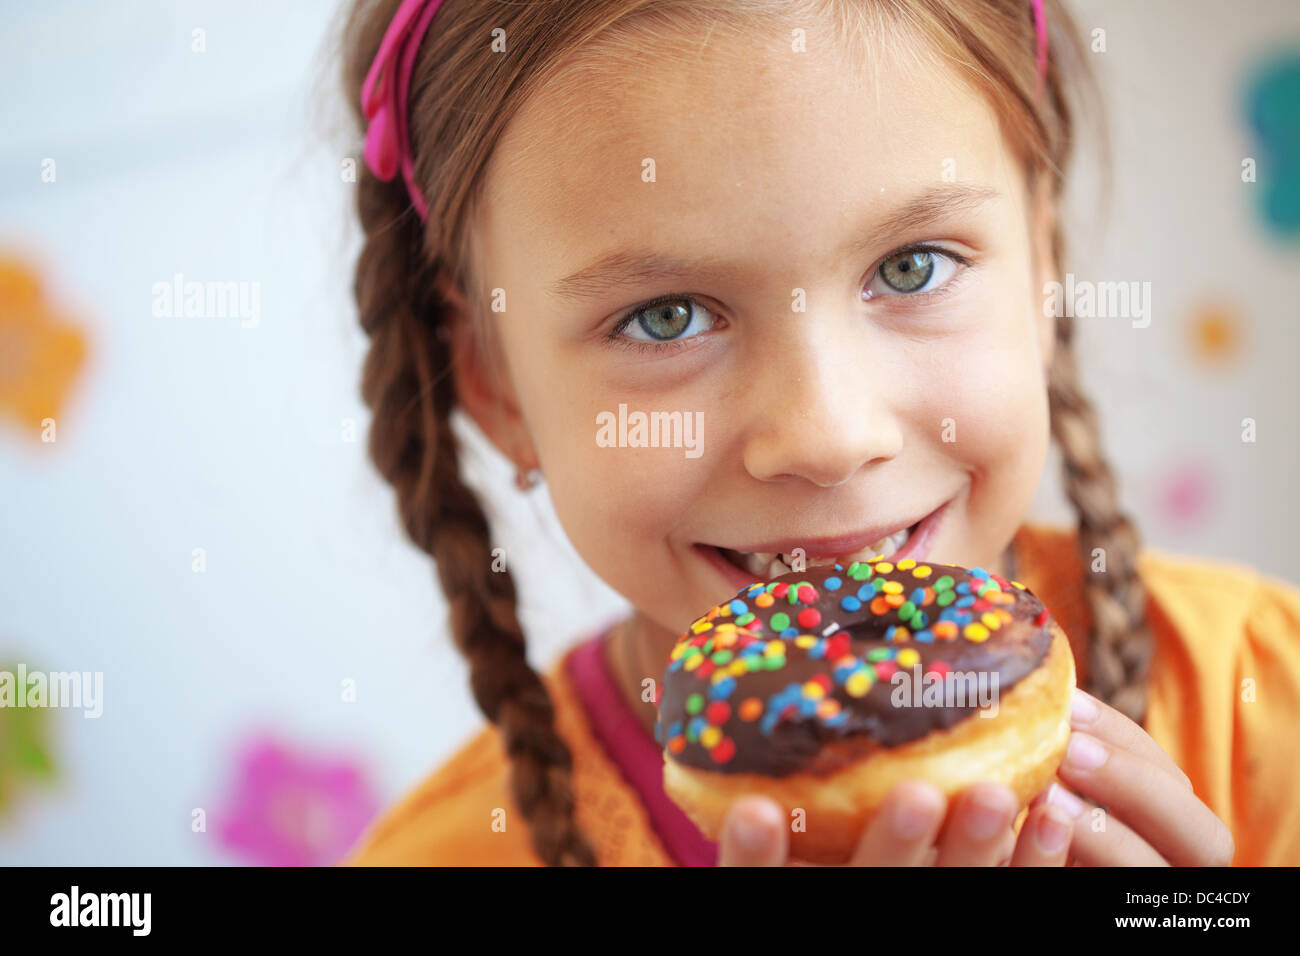 Fat Child Eating Sweets Stock Photos Fat Child Eating Sweets Stock